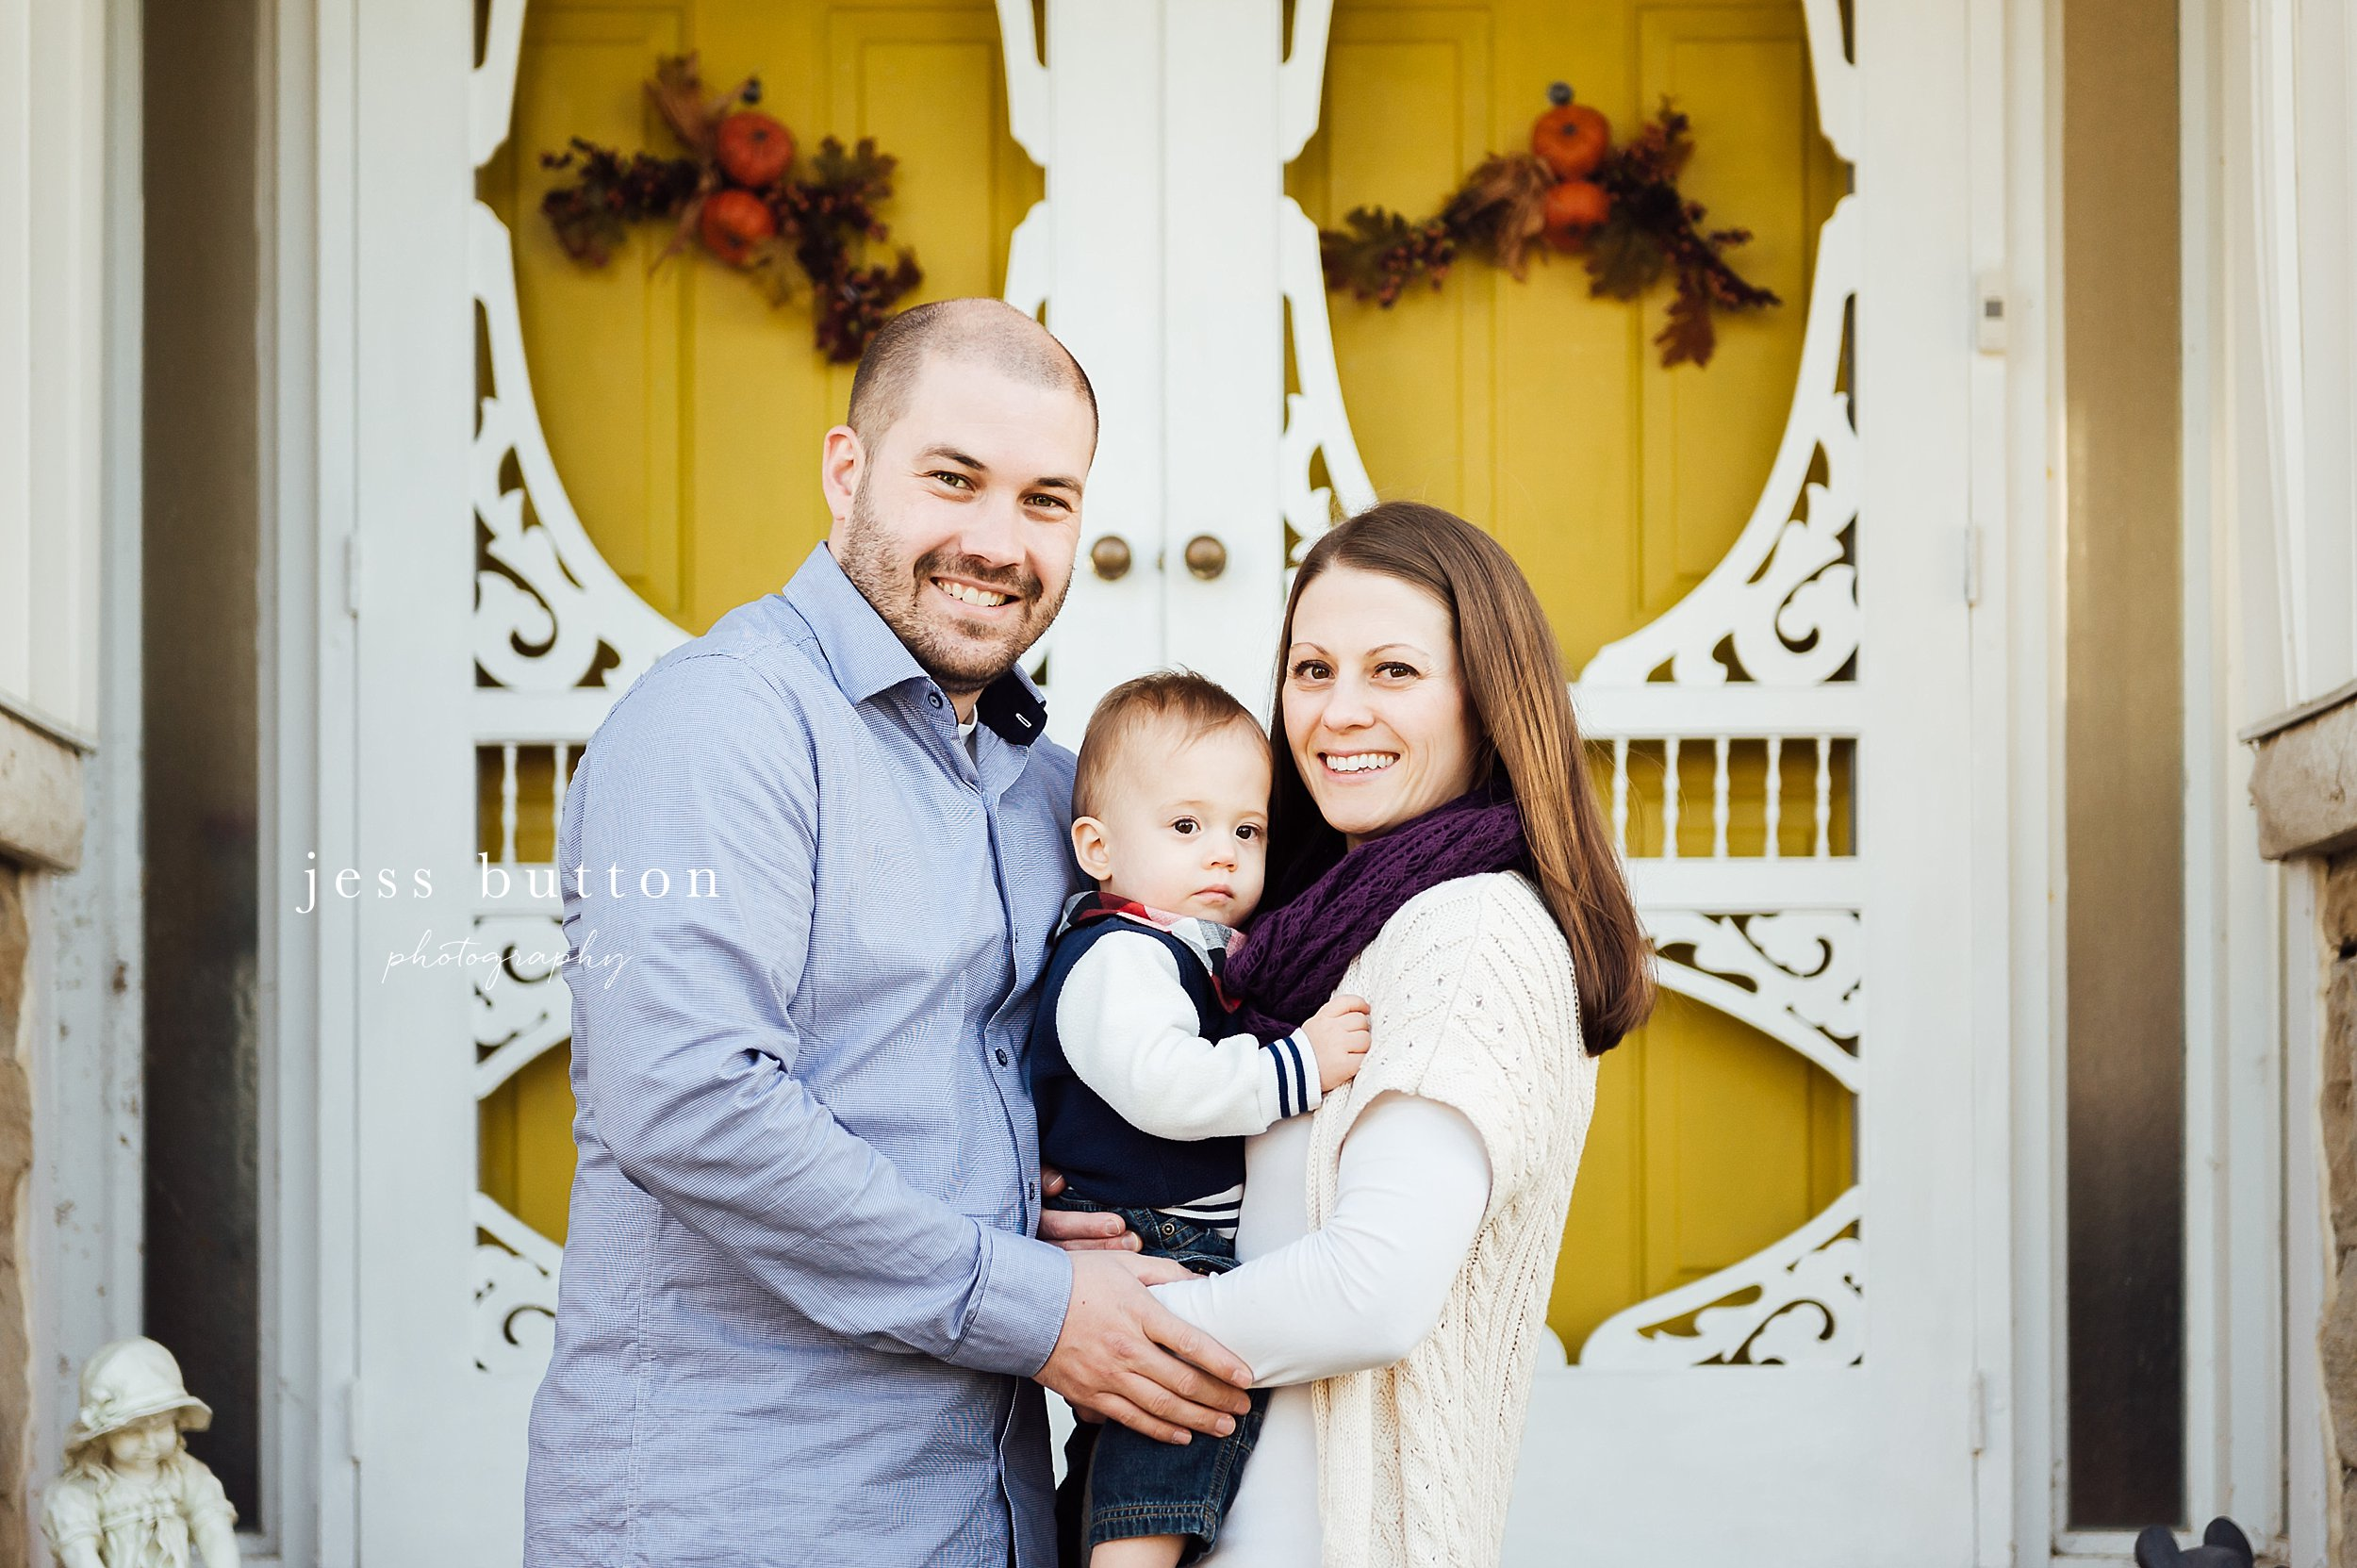 Niagara Family Photographer - photos at home in St Catharines - family of 3 on front porch